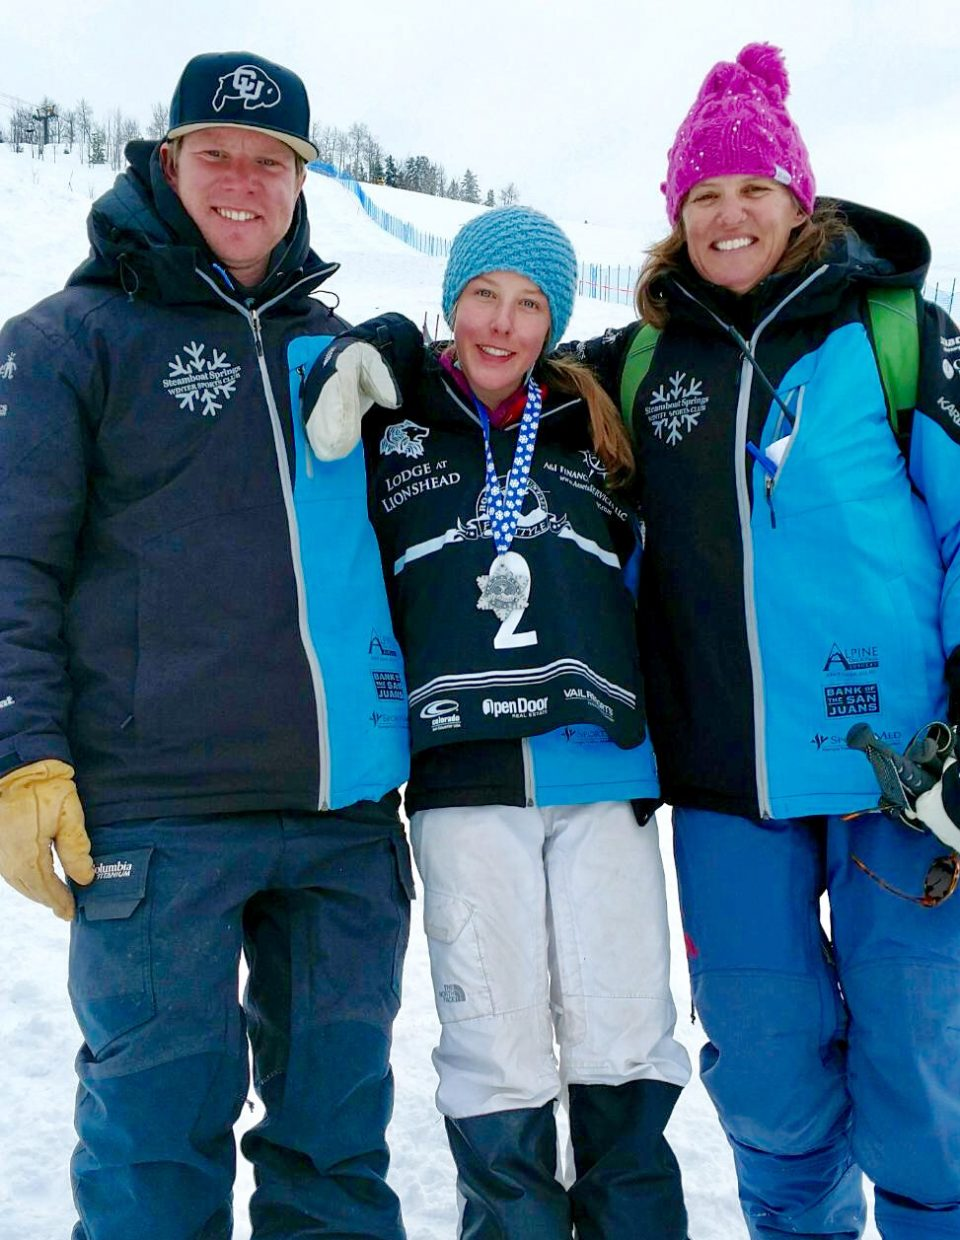 Kenzie Radway, center, won twice during a three-day weekend of moguls skiing in Aspen. Radway added a back flip to her run which made a big difference in her scoring.